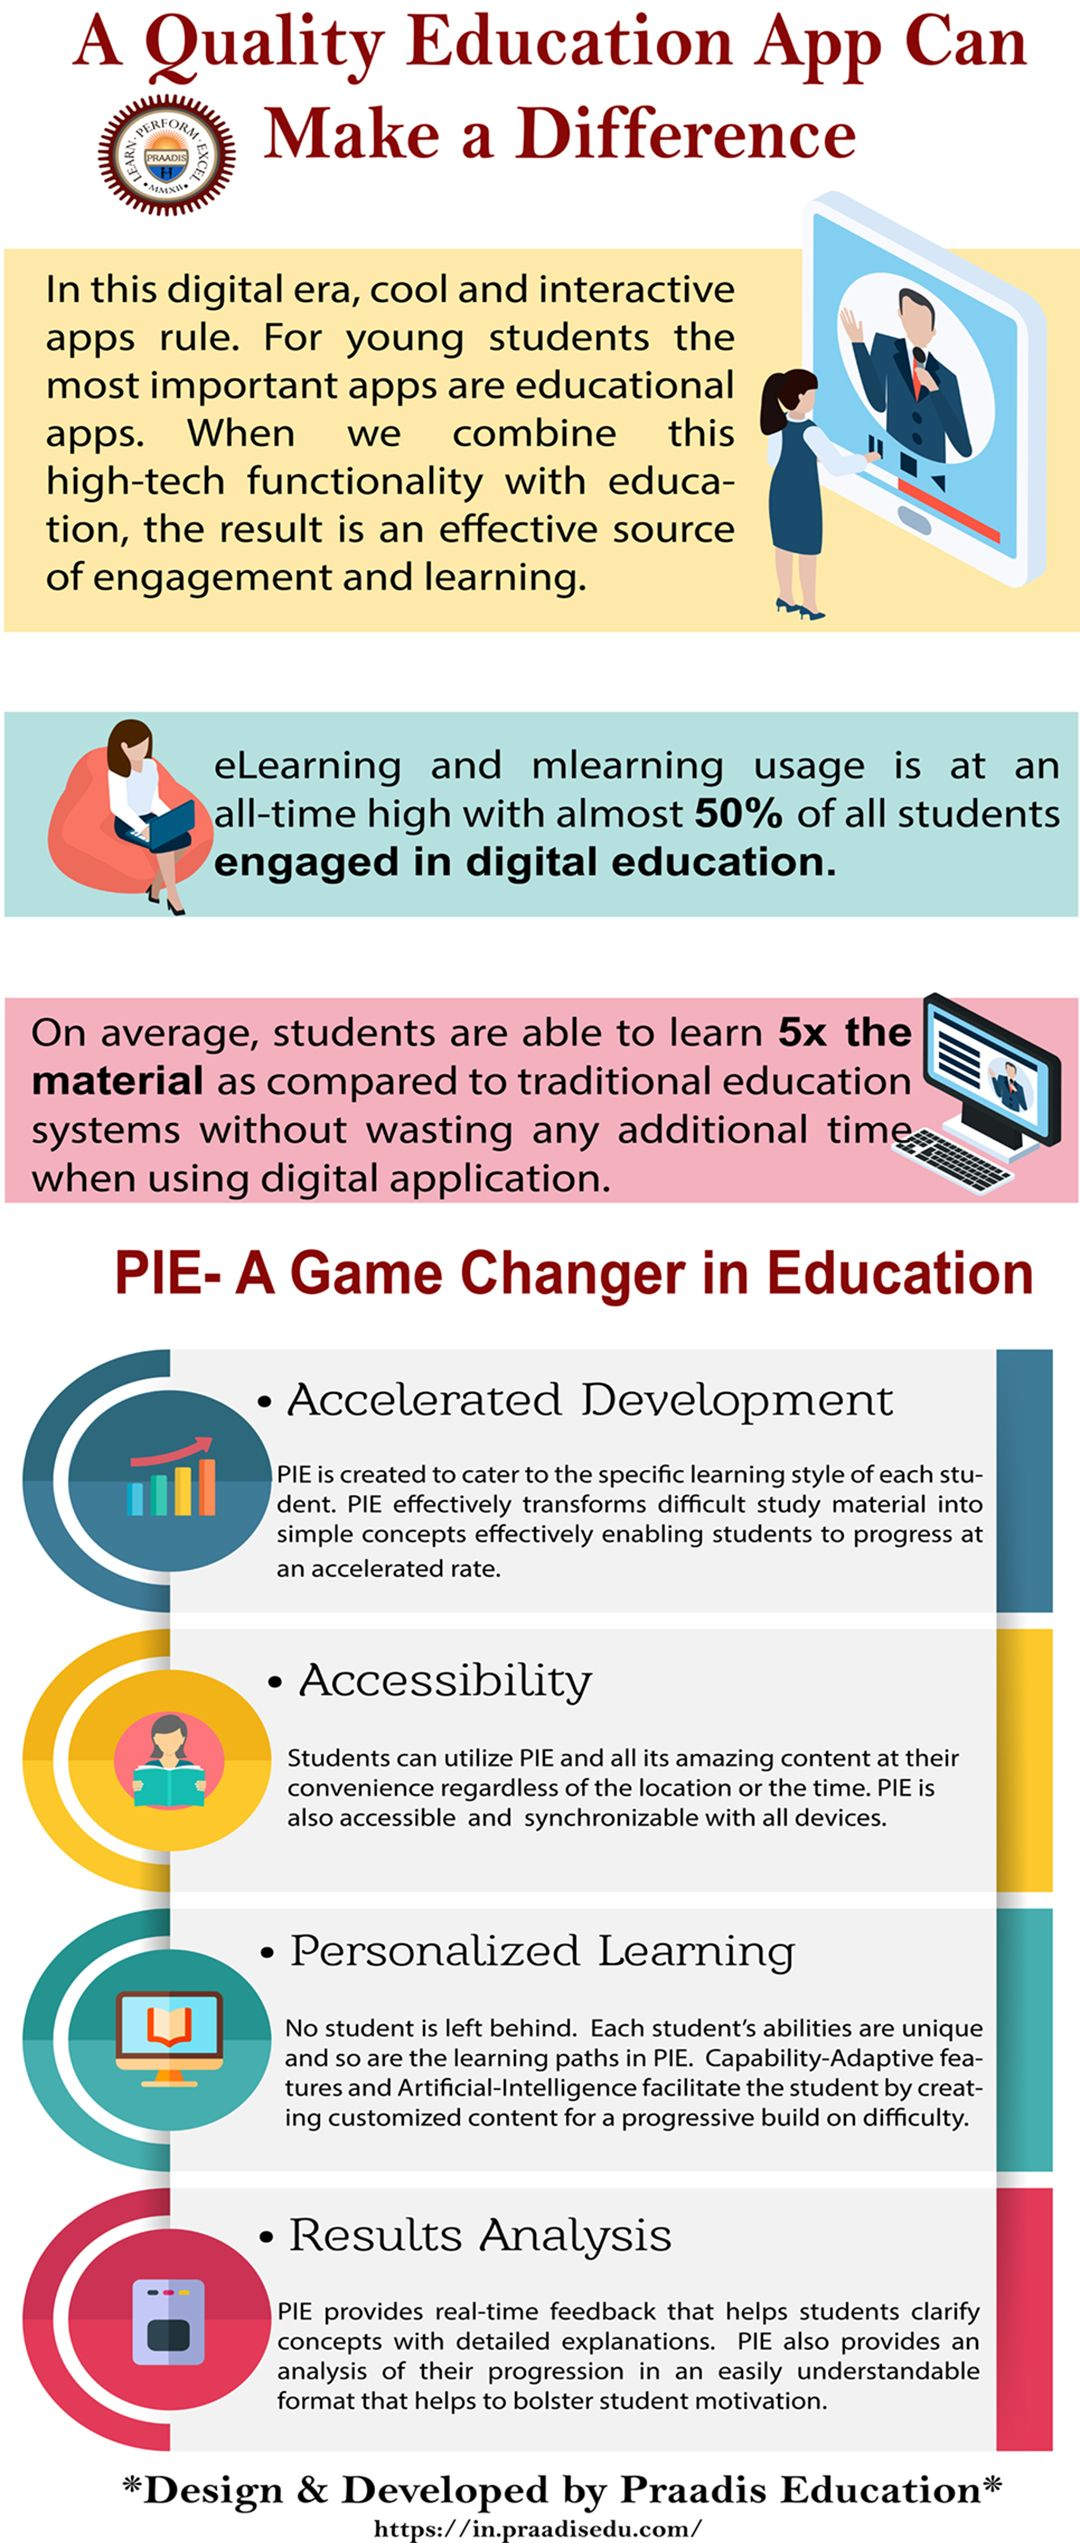 A Quality Education App Can Make a Difference